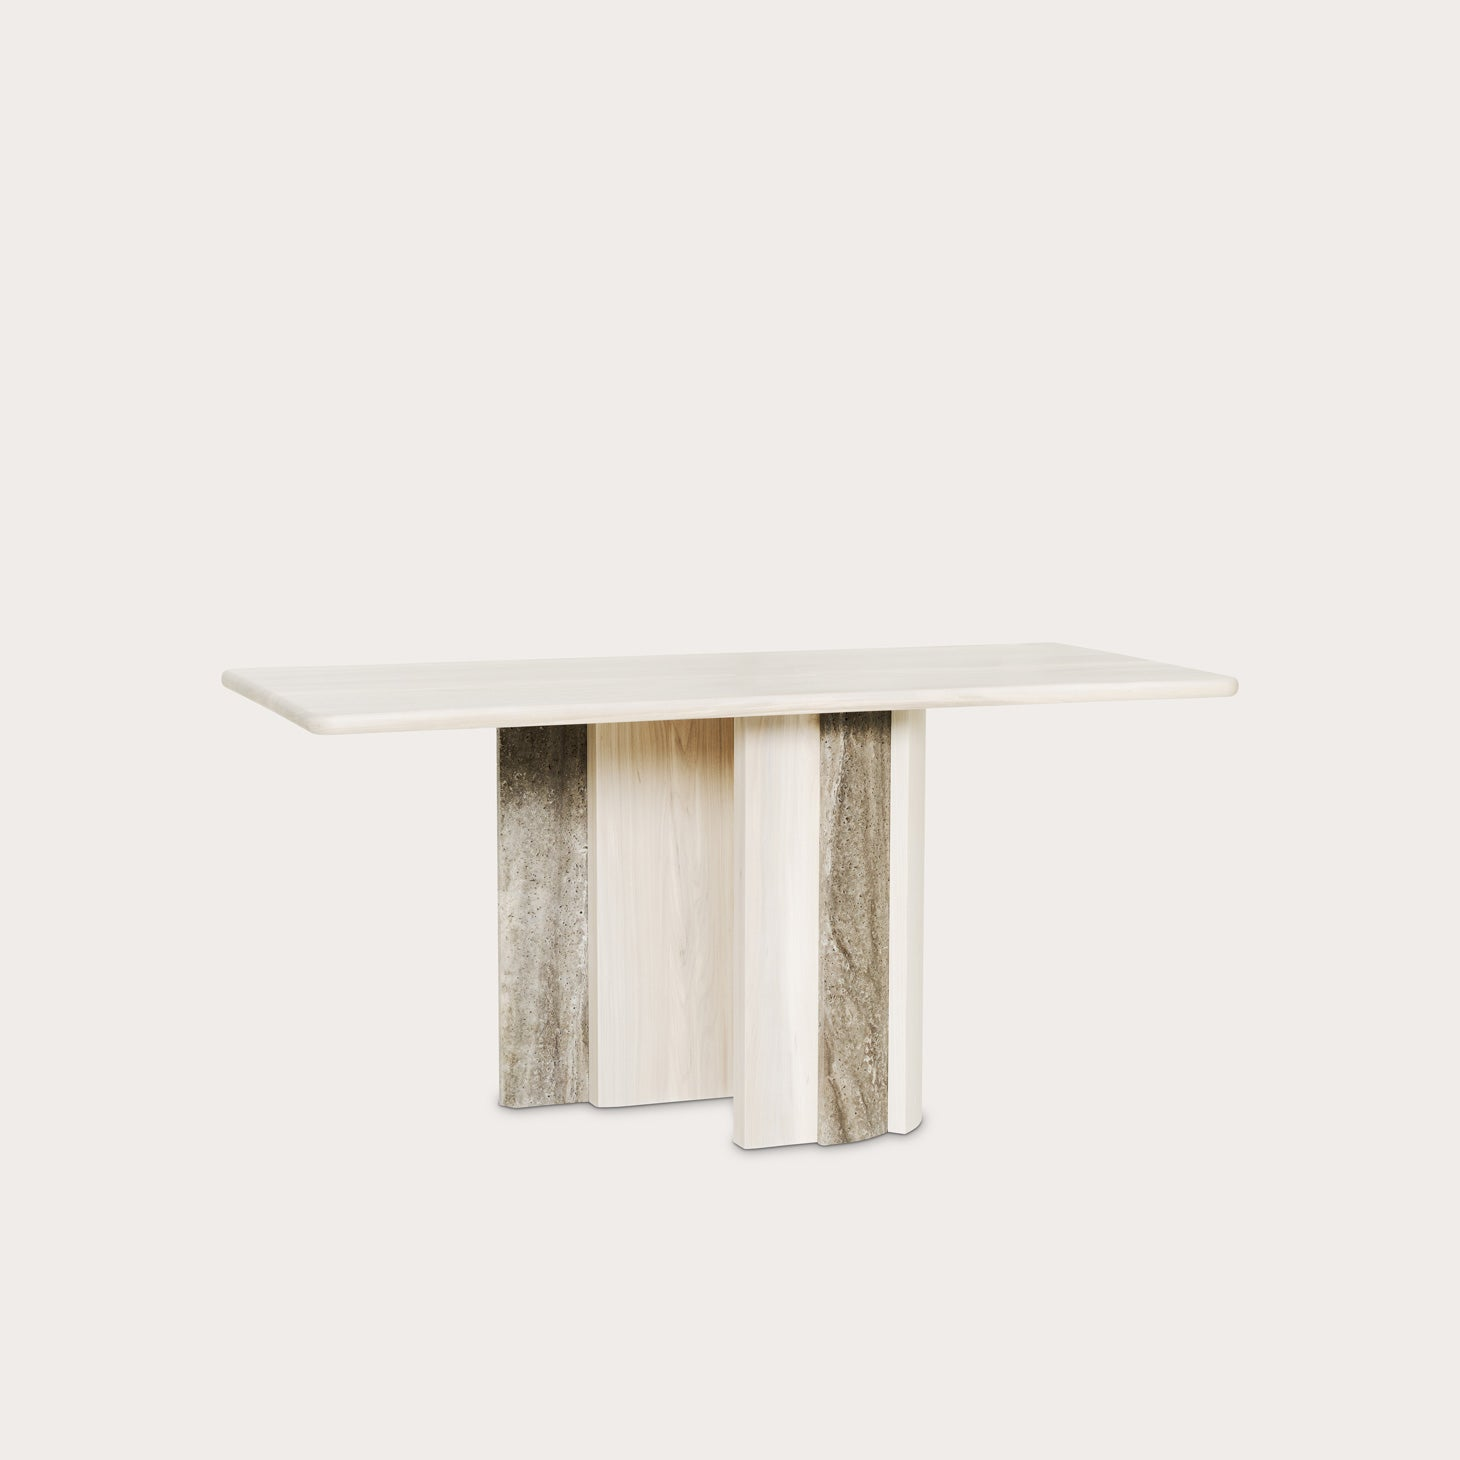 ISO Console Tables Christophe Delcourt Designer Furniture Sku: 008-230-10466